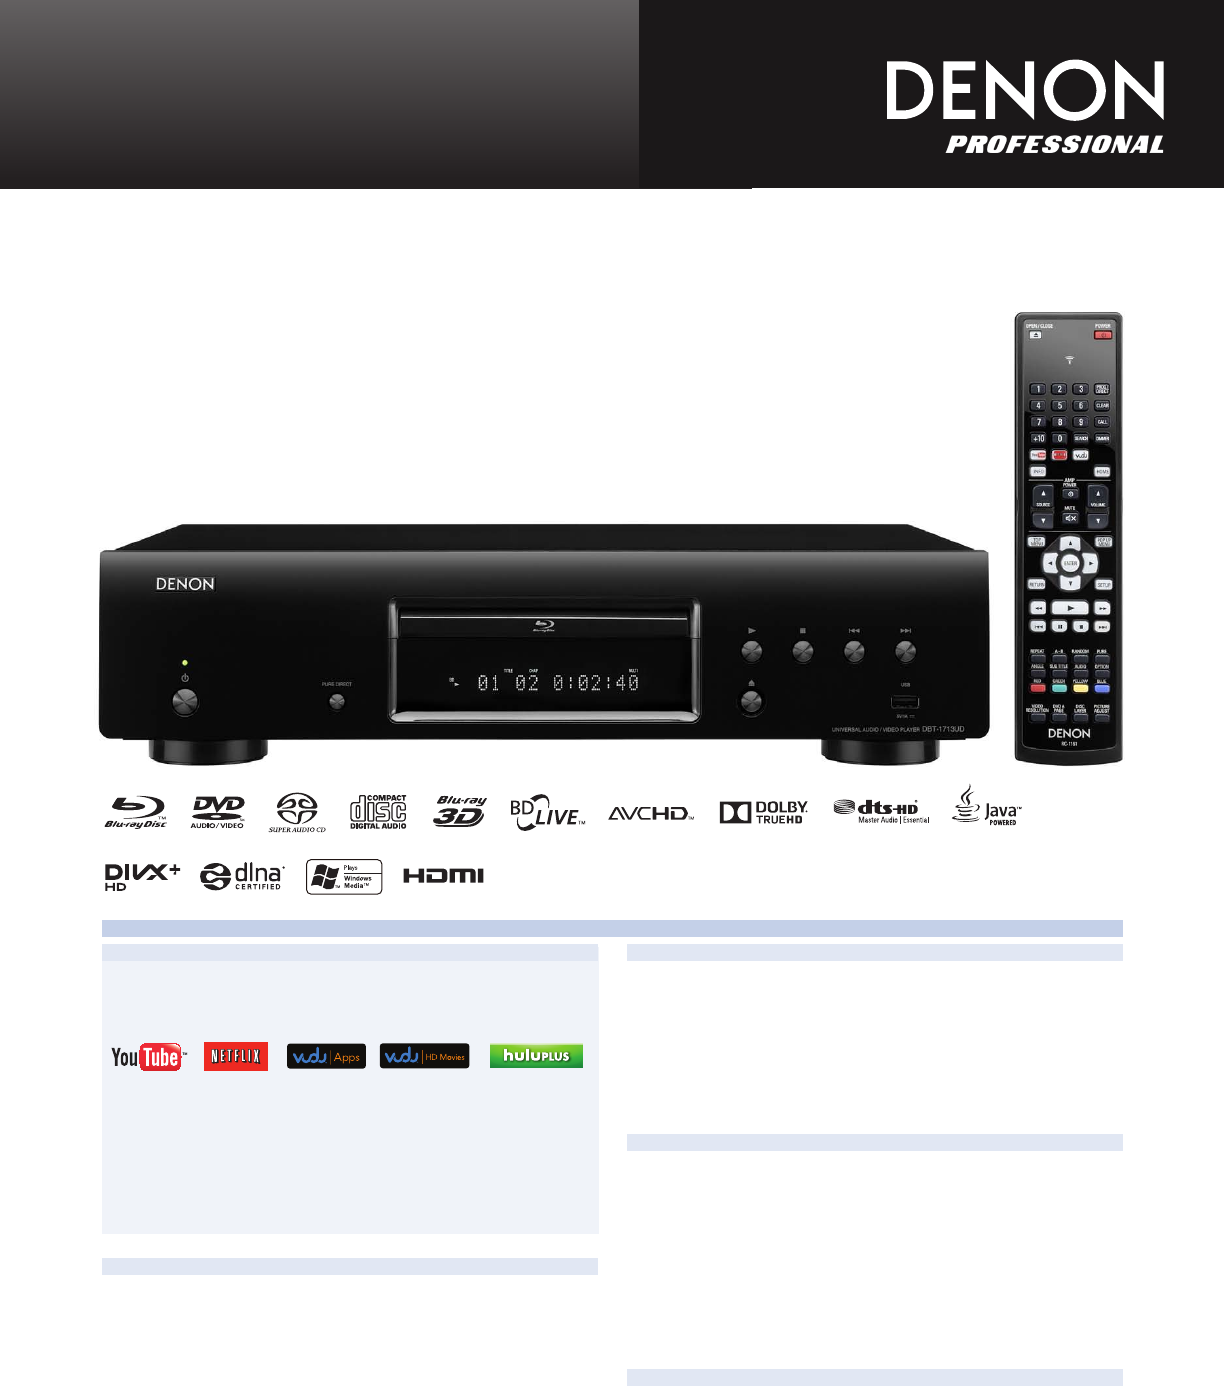 Denon DBT-1713UD DVD Player User Manual